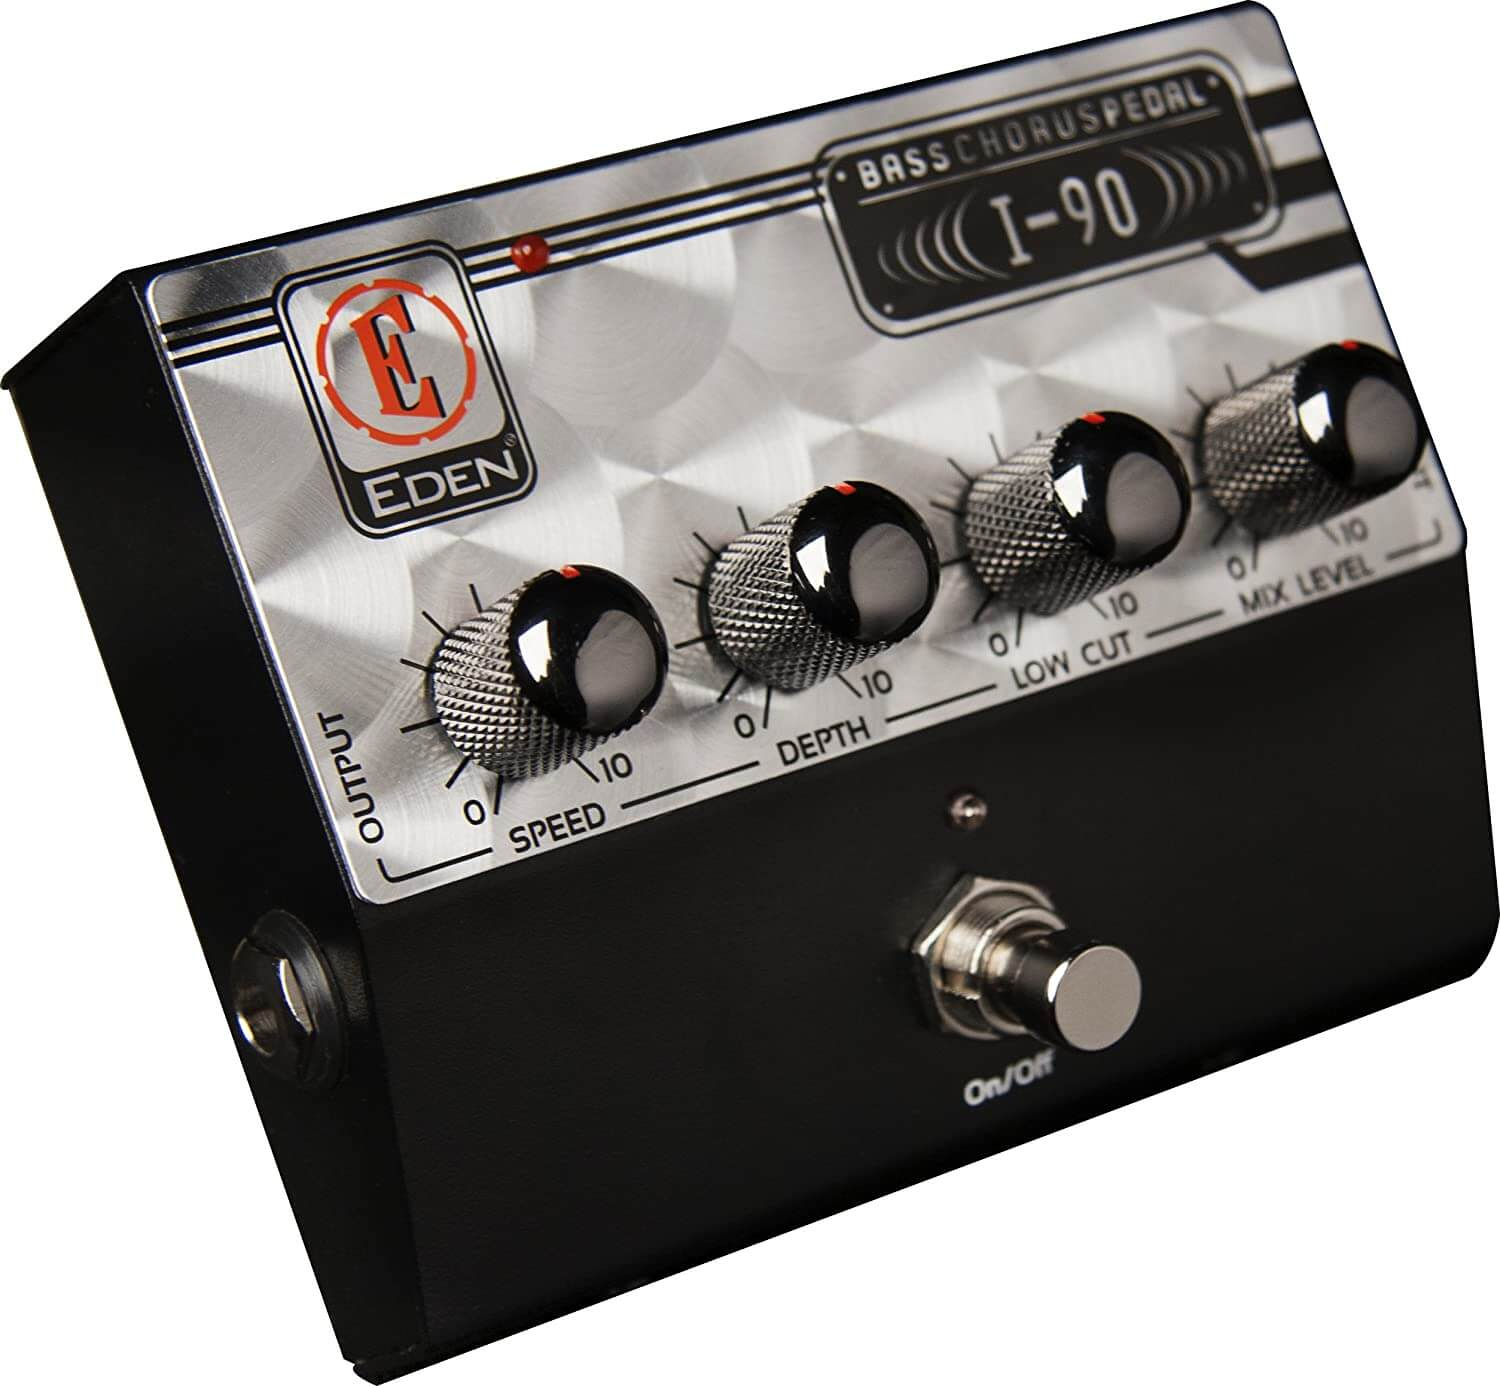 Eden I90 World Tour Bass Chorus Pedal review